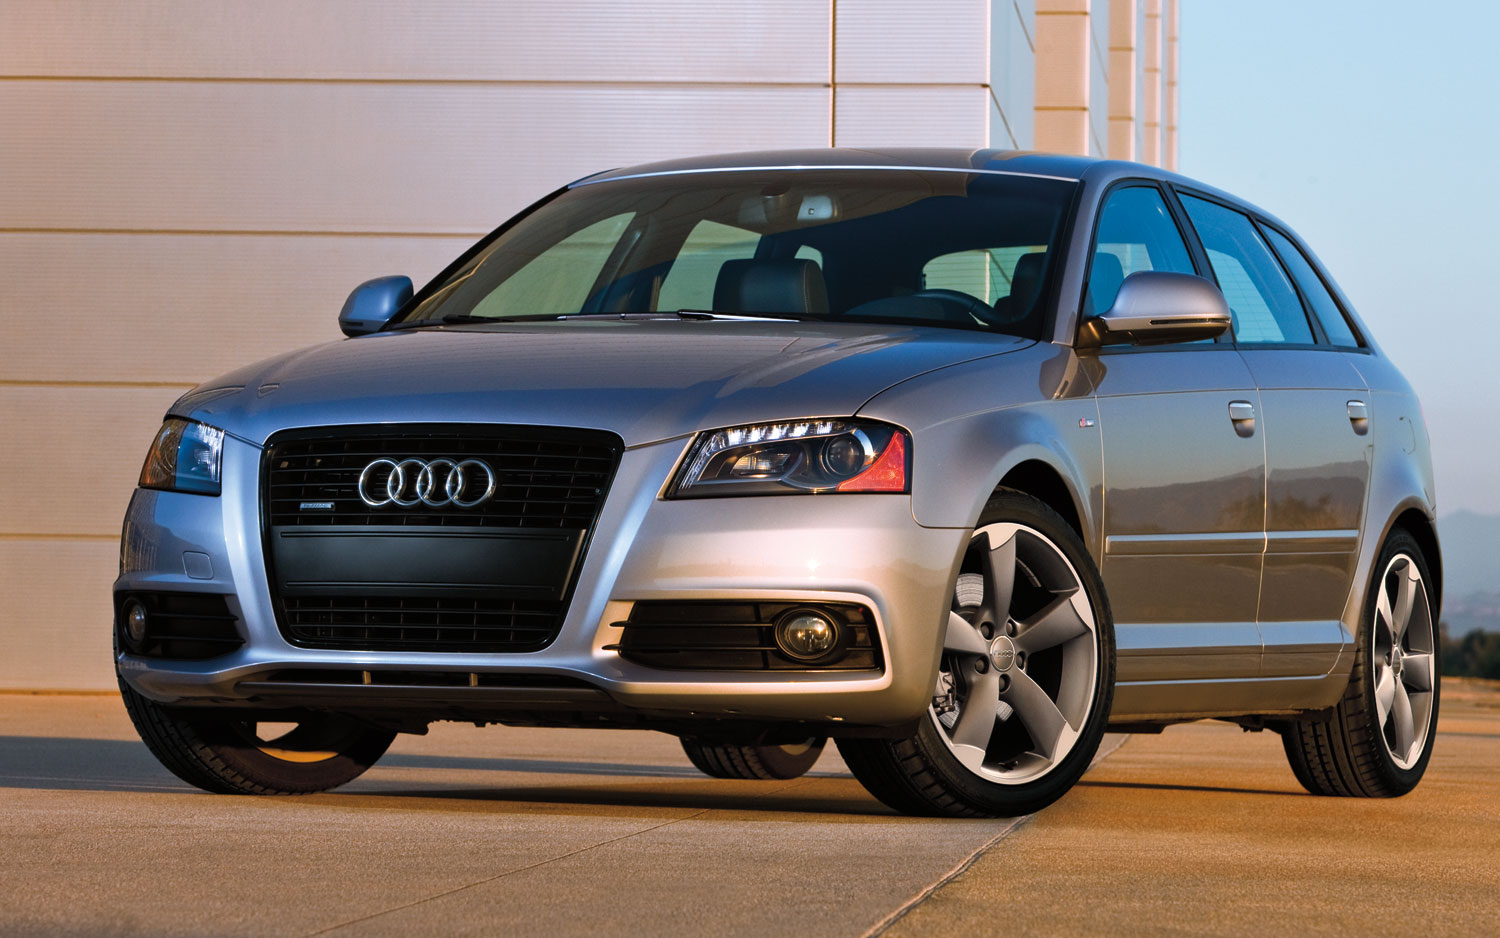 A3 Audi 2011 Hatchback - Without Compromising Luxury in Any Way #11